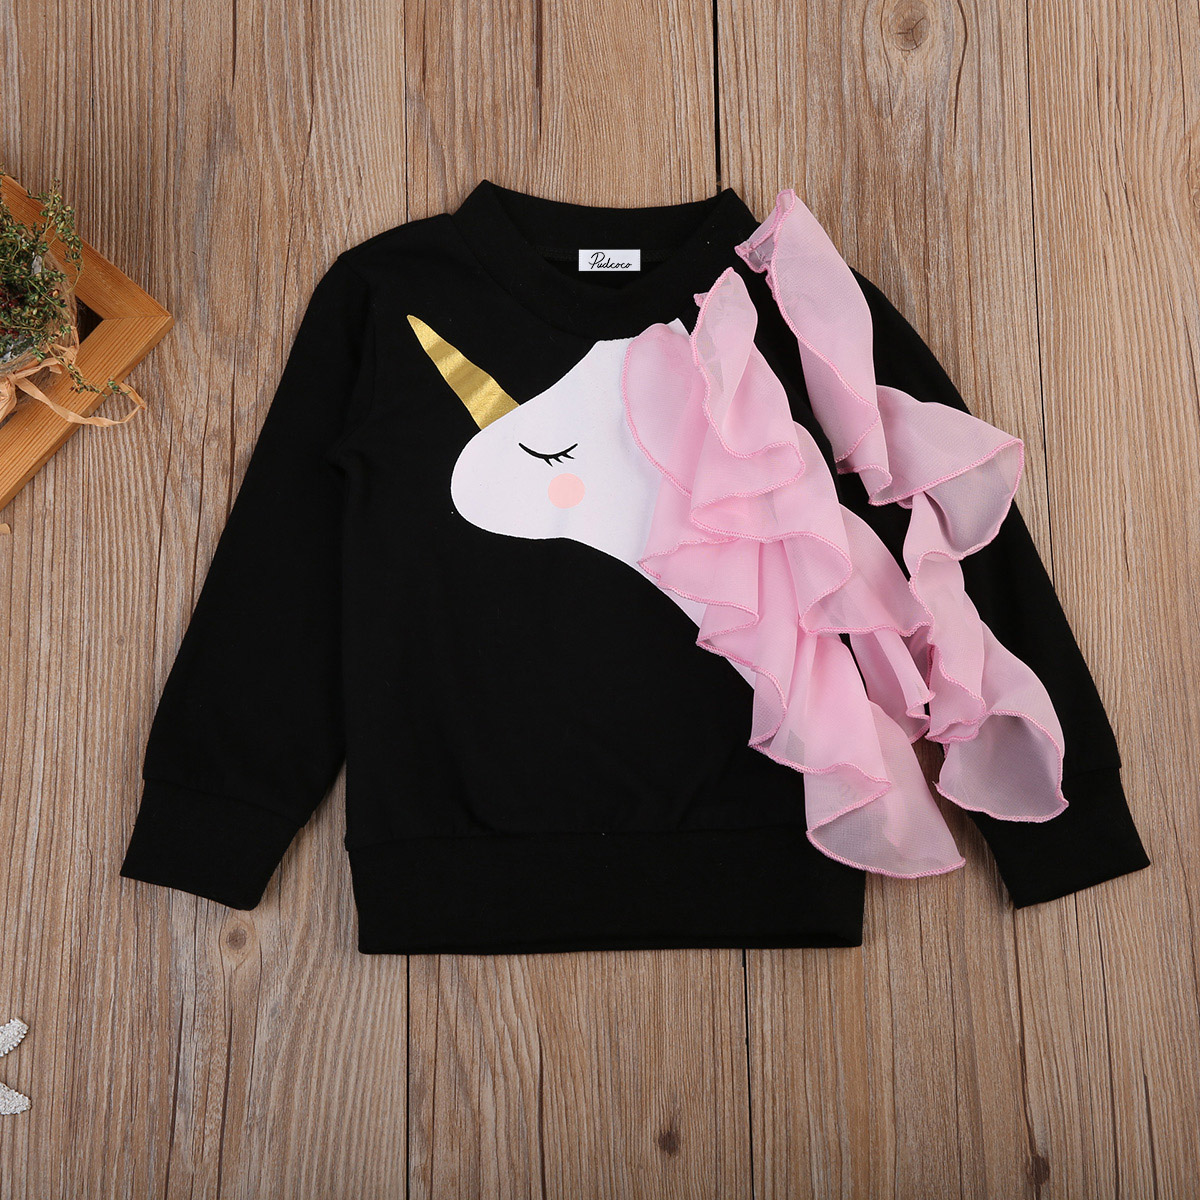 Lovely-Newborn-Baby-Girls-Infant-Cotton-Long-Sleeve-Ruffles-Print-Hoodies-Sweatshirts-Tops-Kids-Outfits-Winter-Autumn-Clothes-1